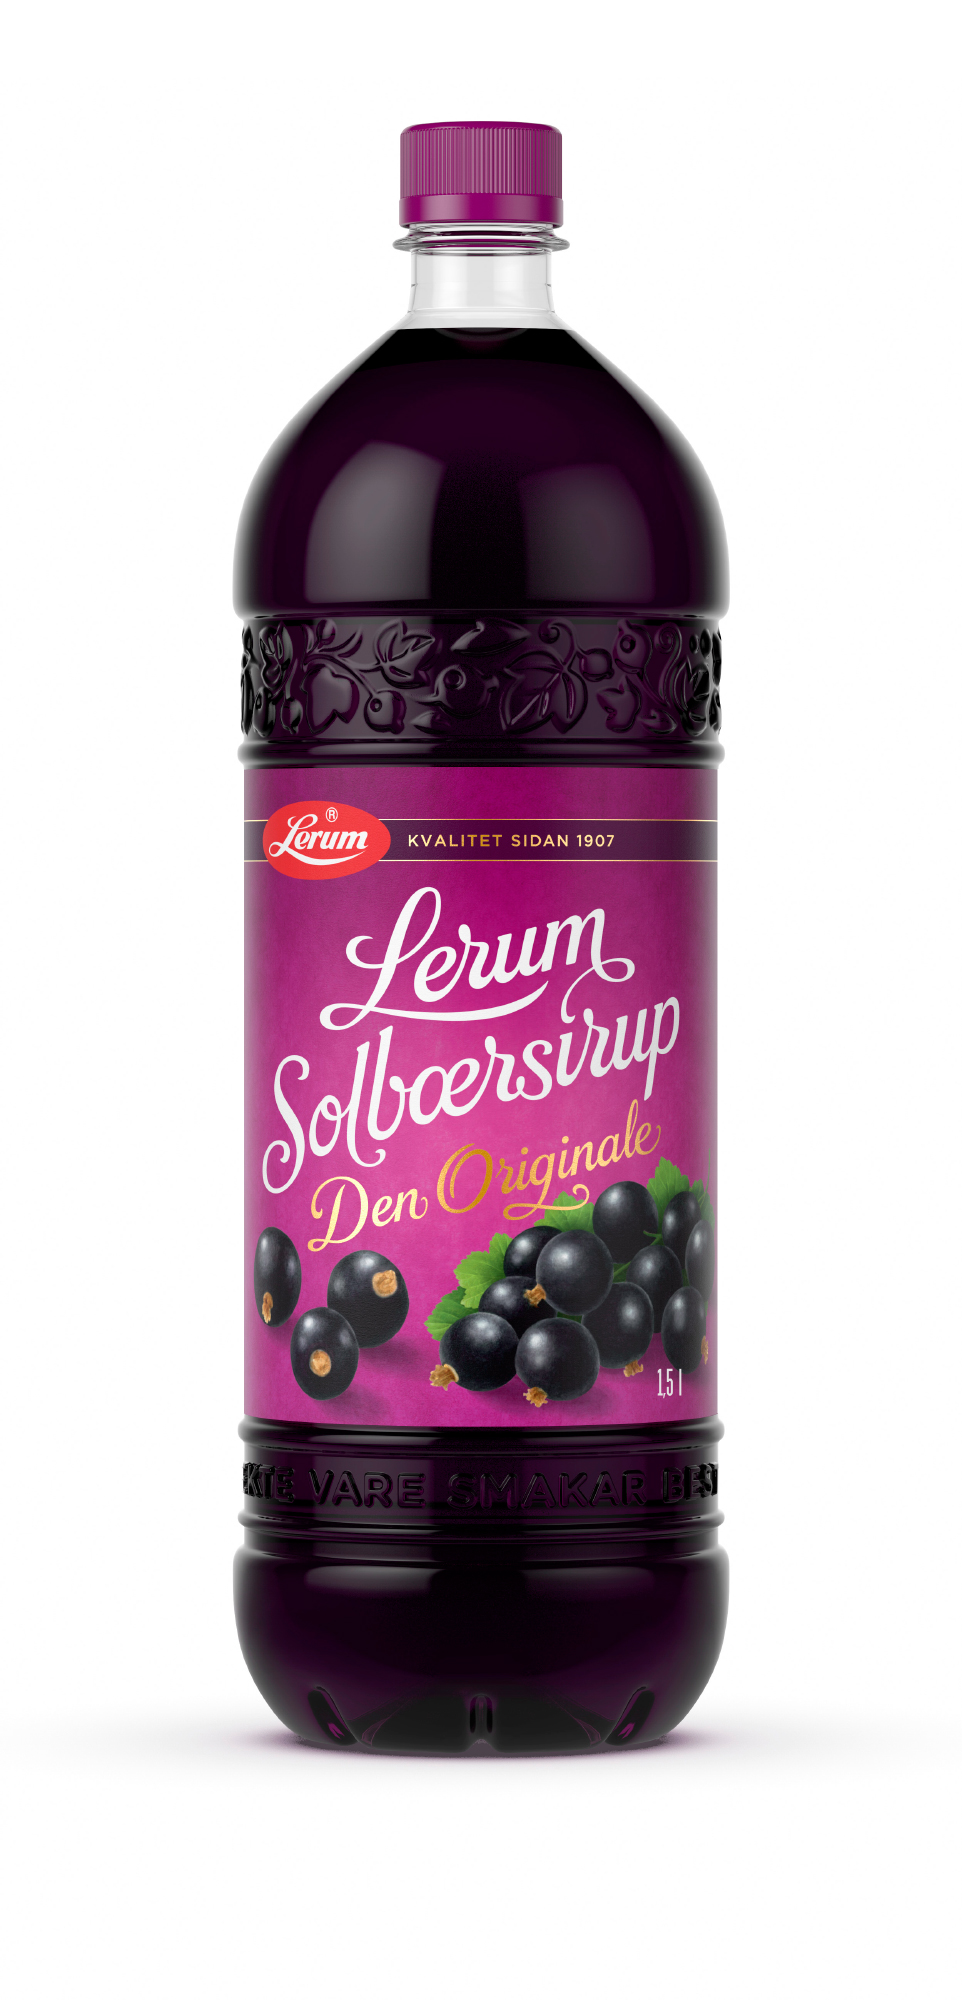 3D Lerum-PET-1500ml-Solbærsirup.jpeg